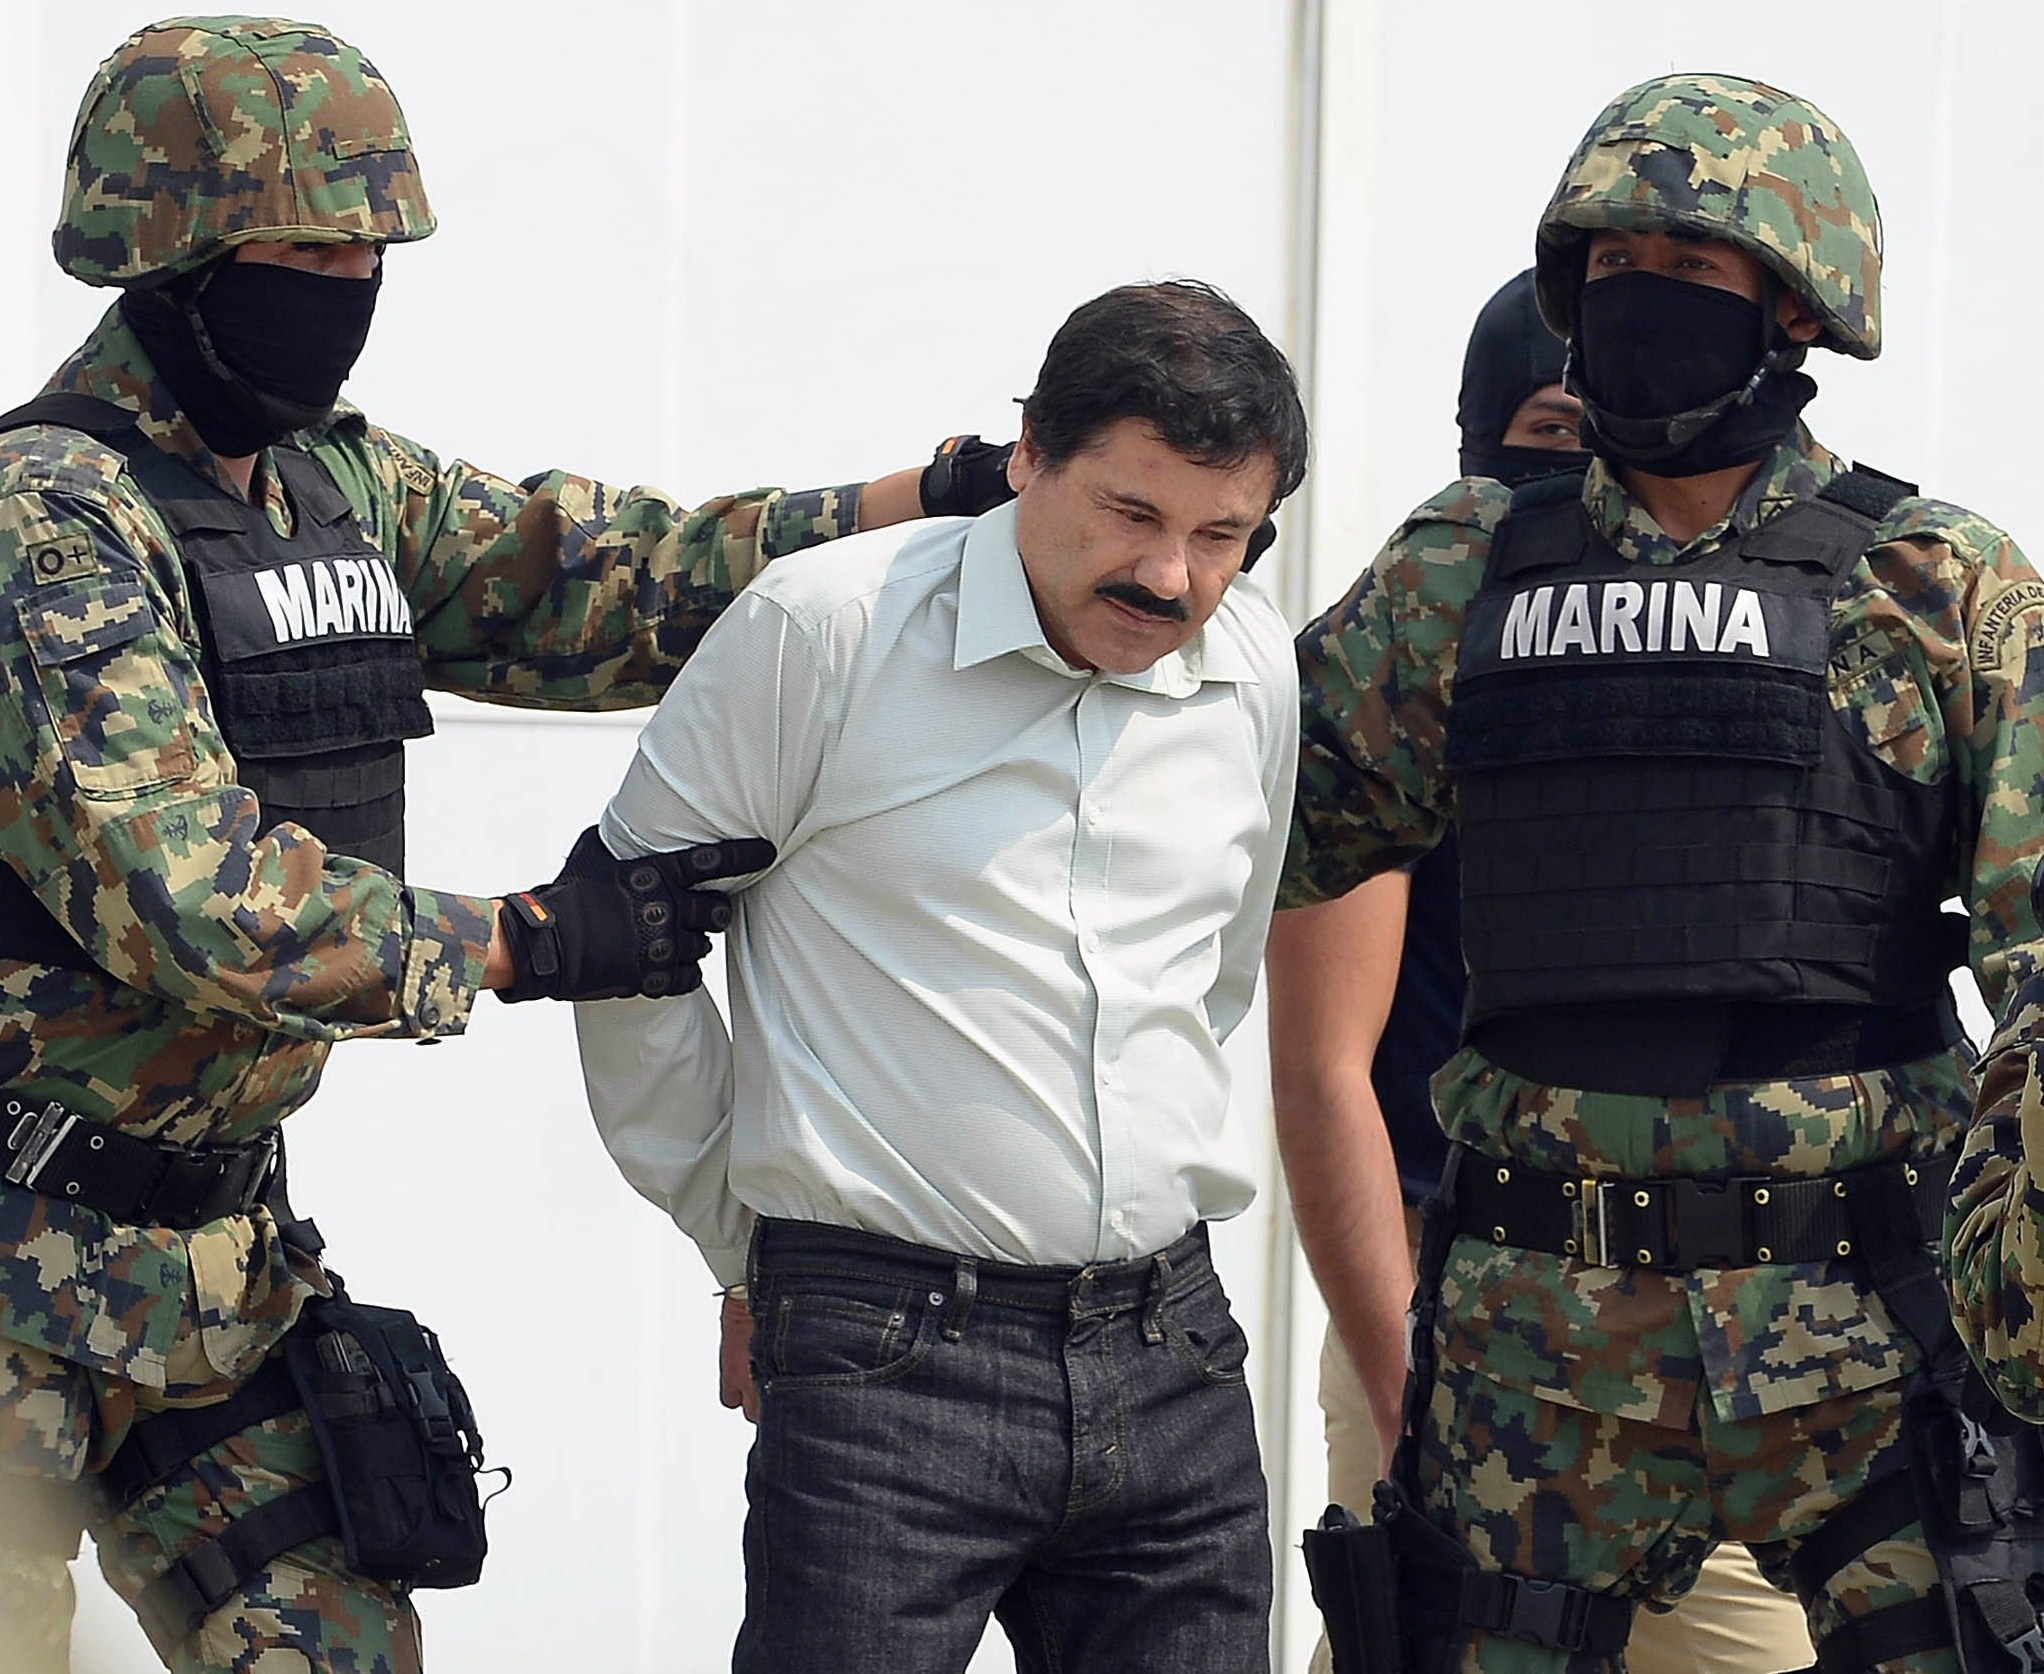 """El Chapo"" Guzman after his arrest in February 2014. Gety http://abcnews.go.com/International/mexican-drug-lord-joaquin-el-chapo-guzman-escapes/story?id=32391731"